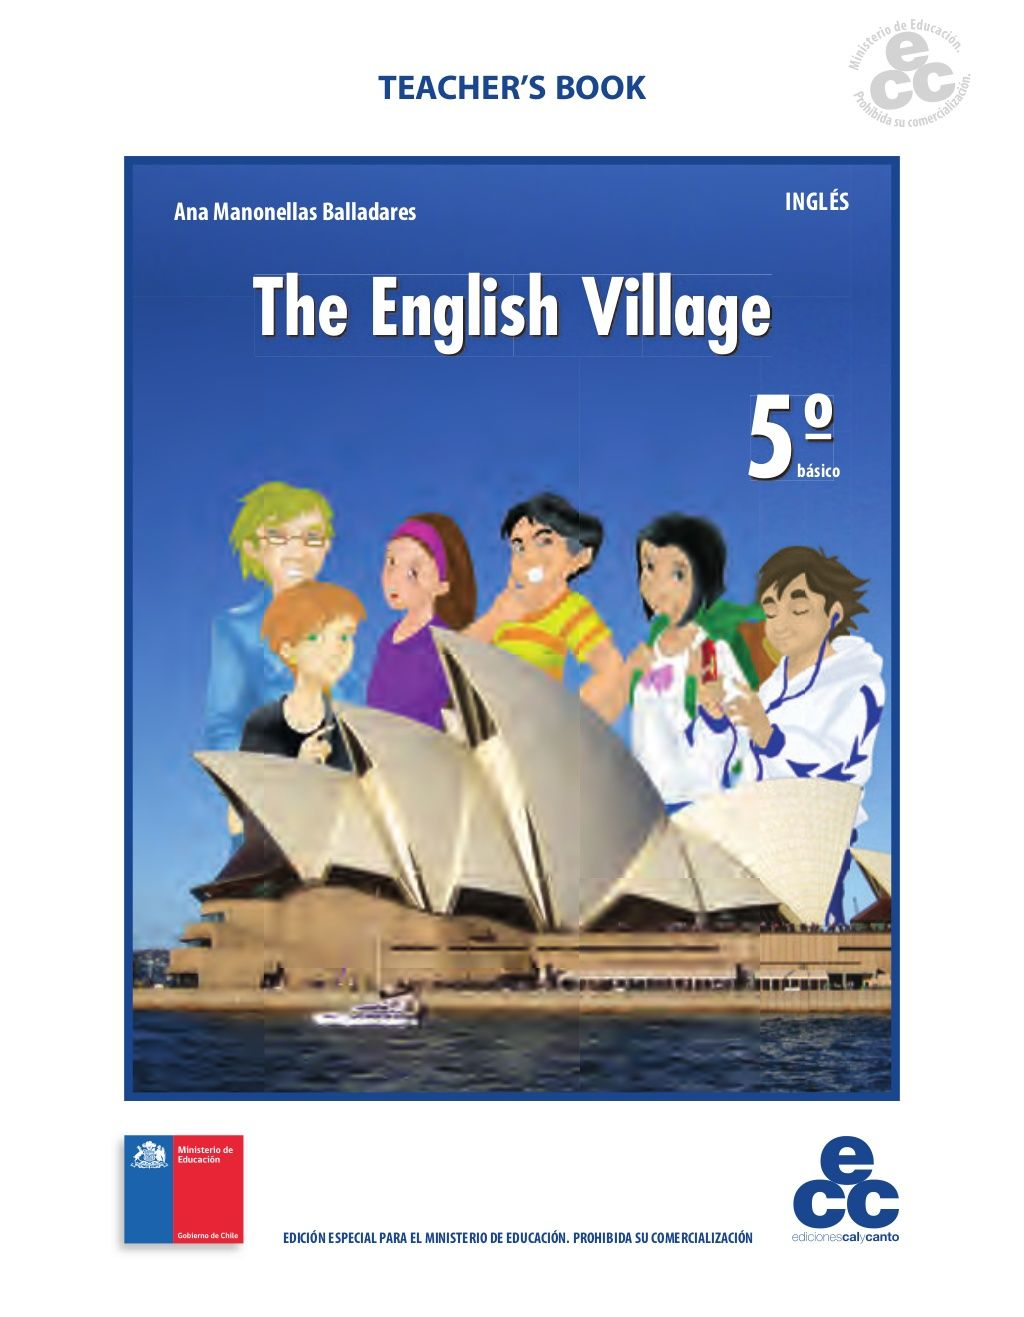 Ingles Basico Libro Inglés 5 Básico Teacher 39s Book By Luis Fernandez Martinez